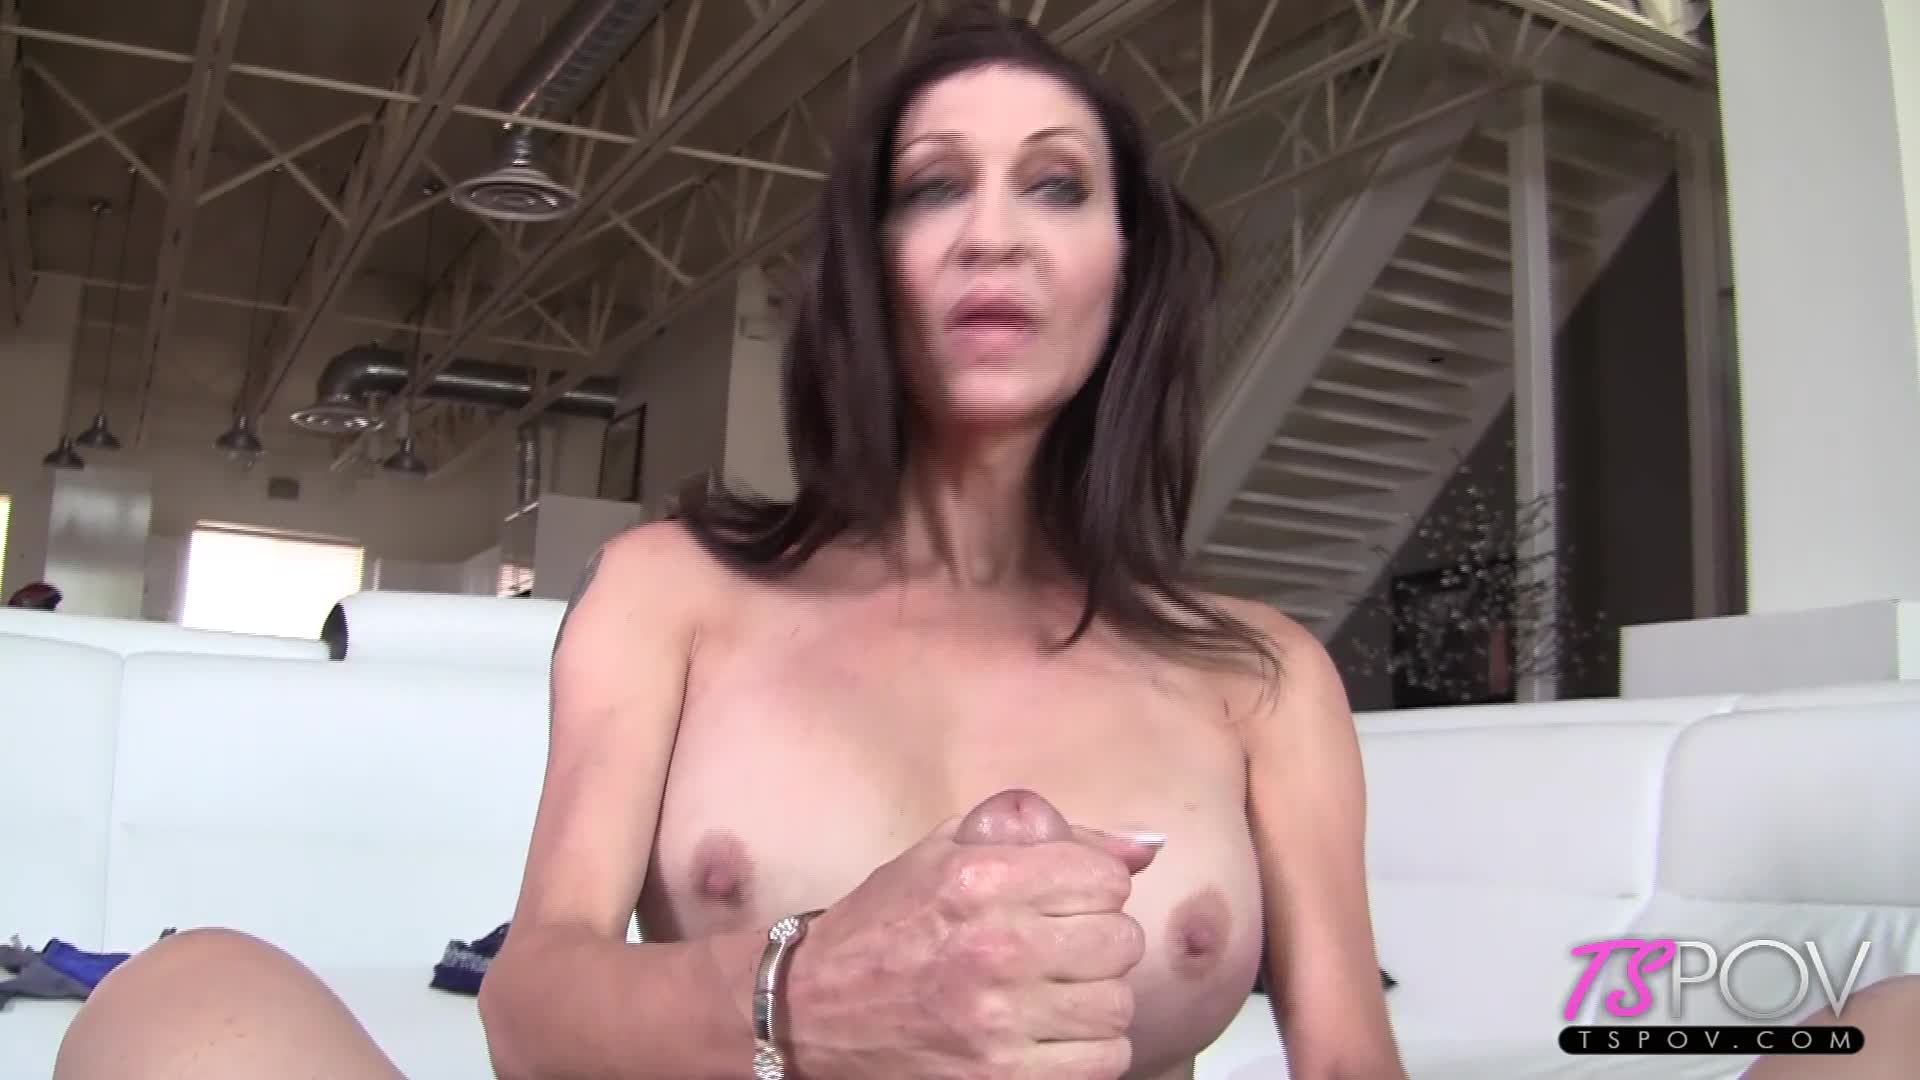 Strand Ficken Porno Tube abuse